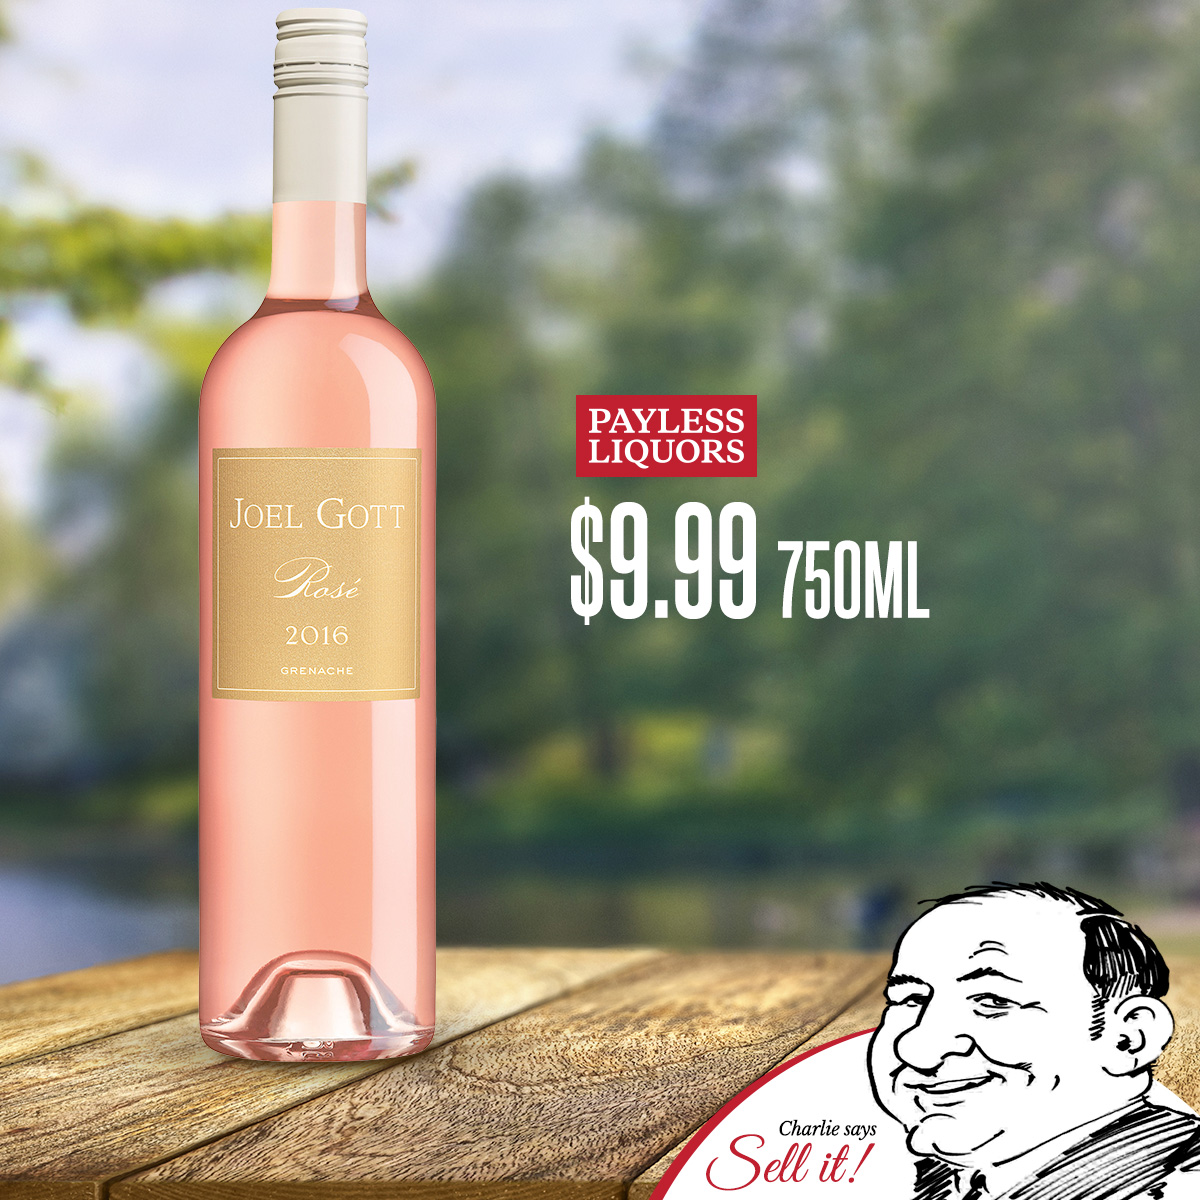 Joel Gott Rose 750mL